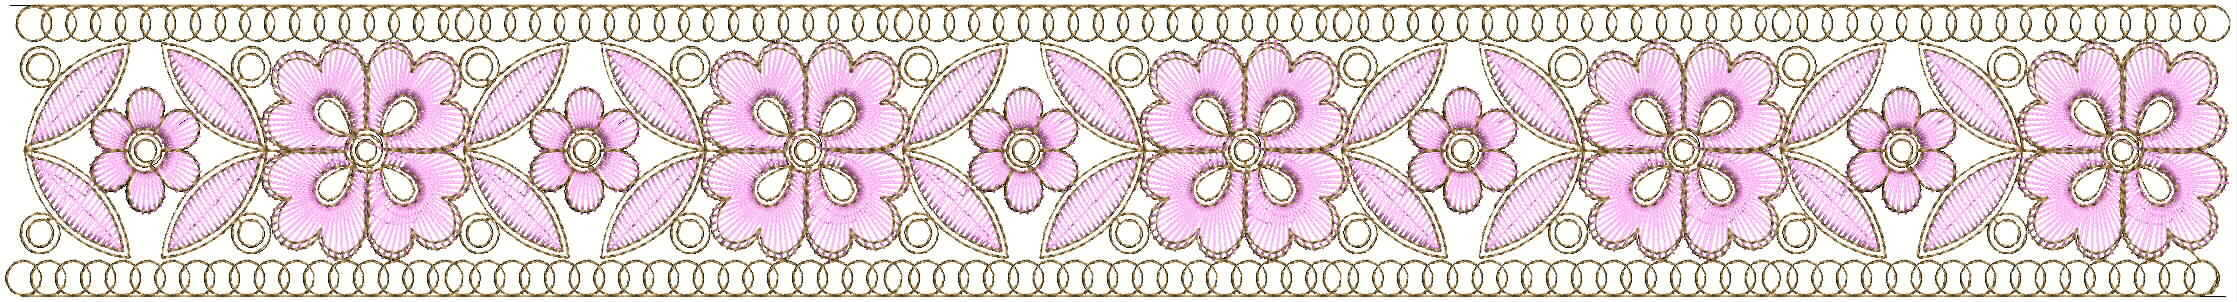 Small Beautiful lace/border embroidery designs